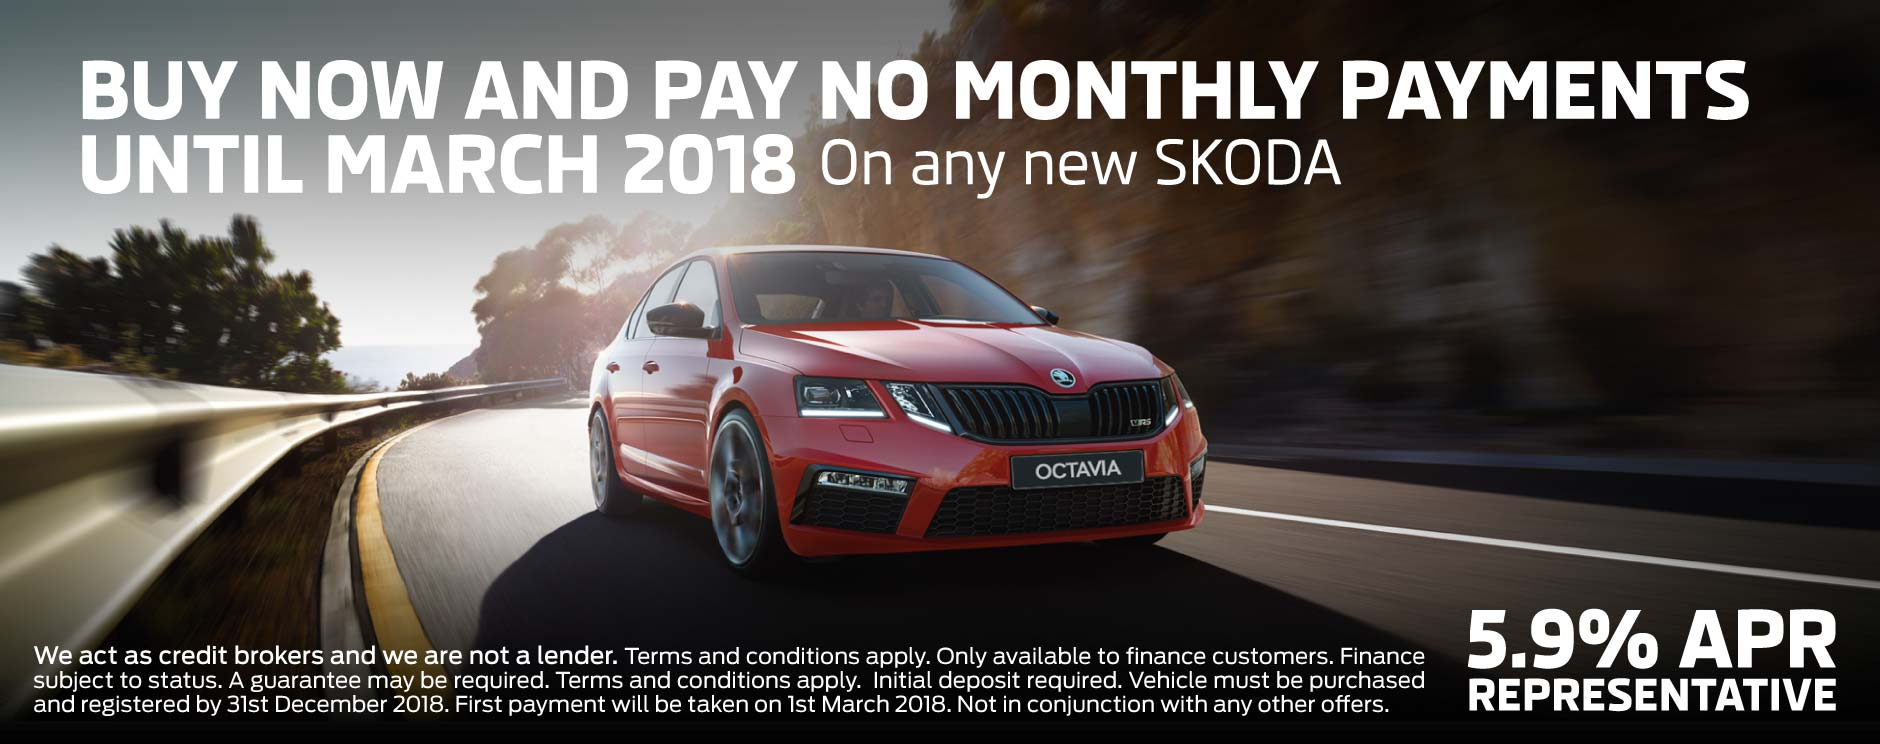 SKODA Buy Now and Pay No Monthly Payments Until March 2018